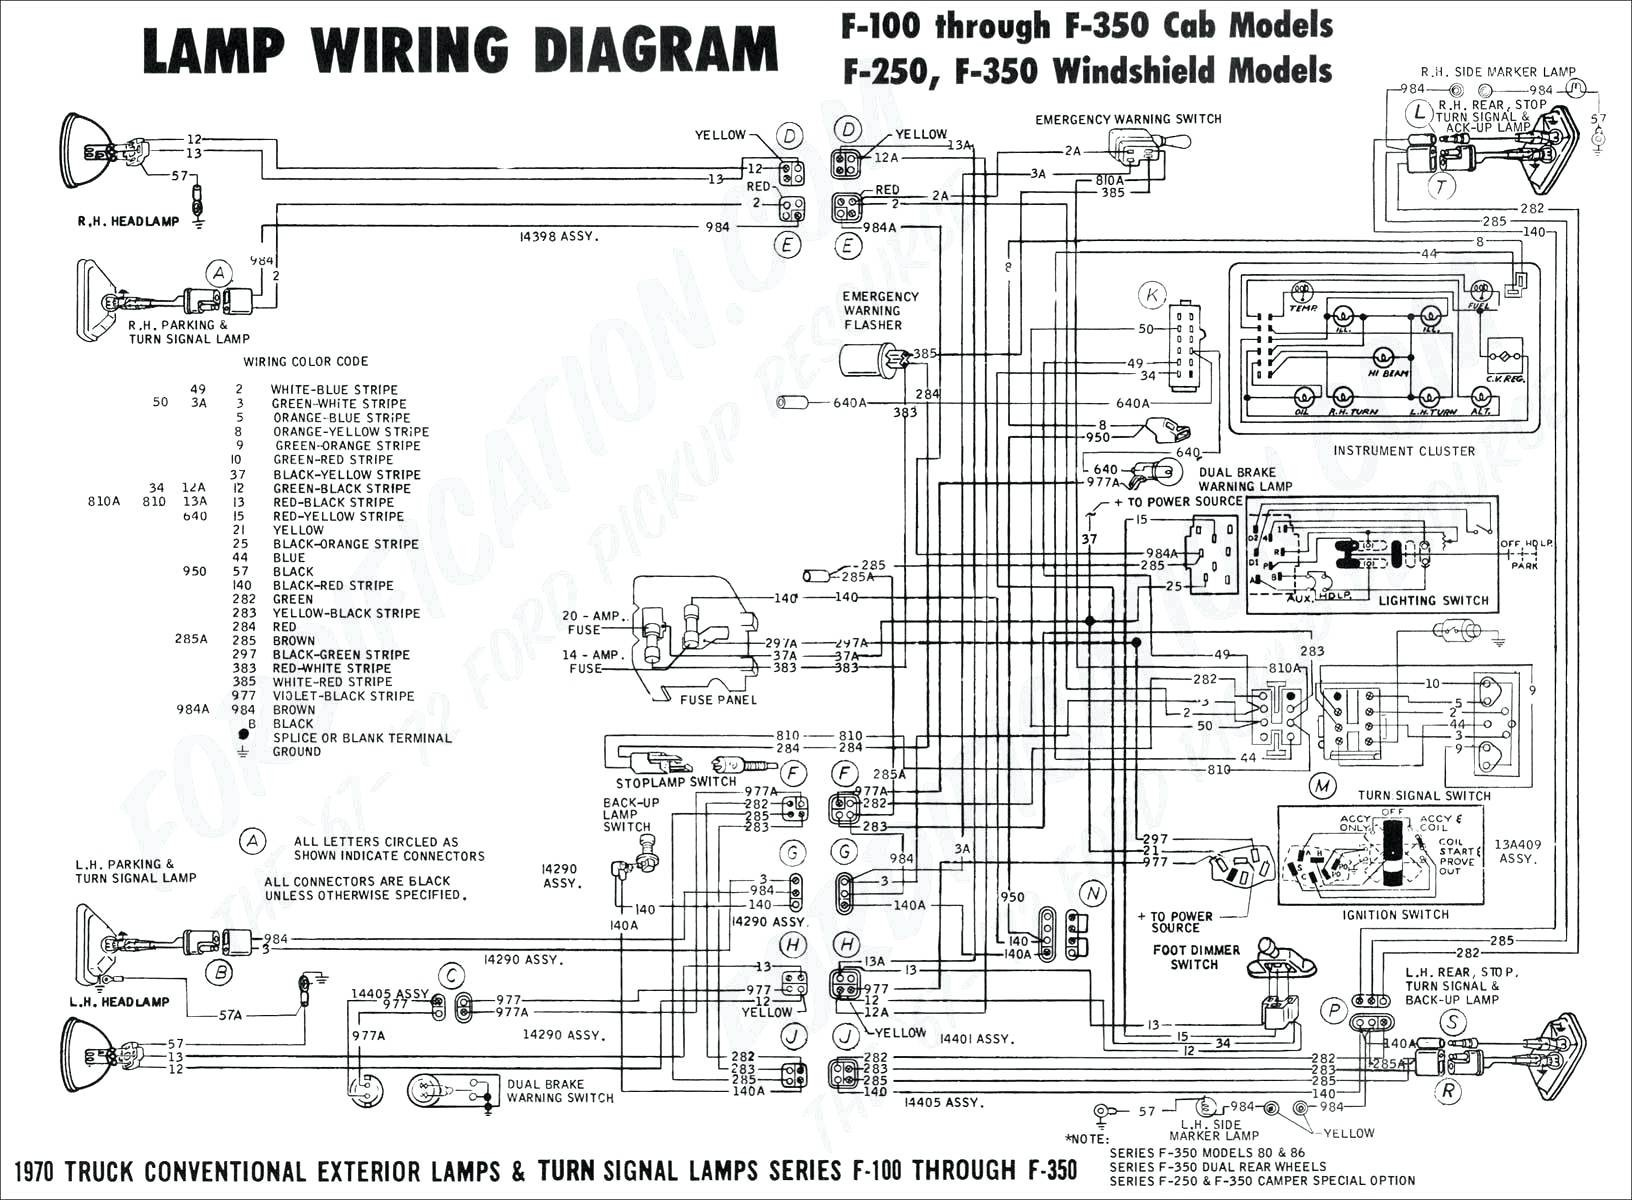 Kohler Engine Wiring Diagram 1954 Buick Wiring Diagram Reinvent Your Wiring Diagram • Of Kohler Engine Wiring Diagram